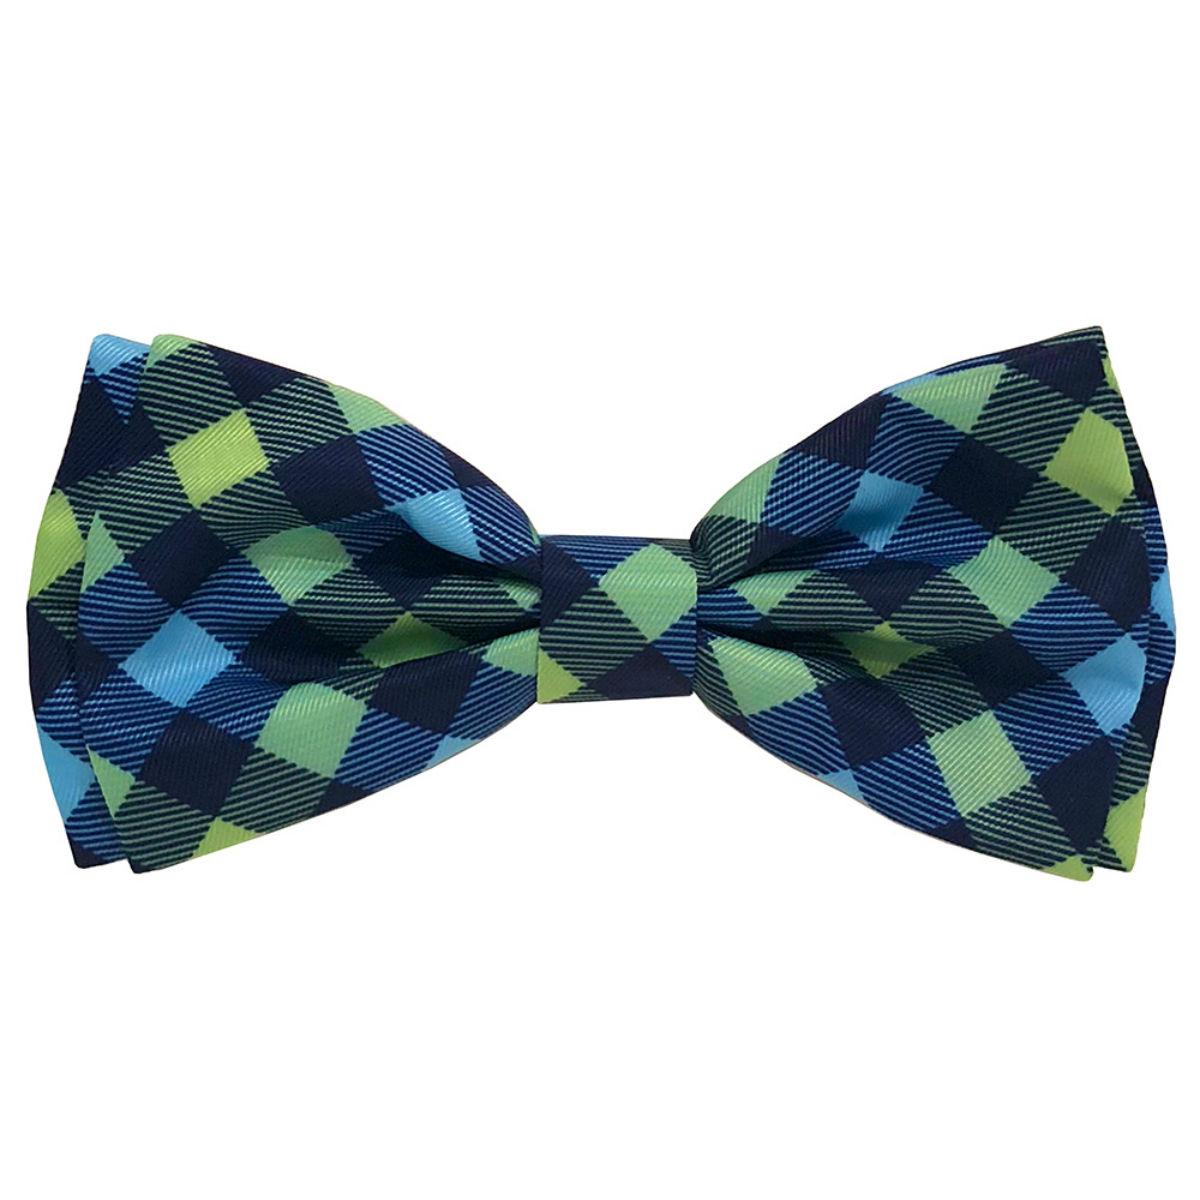 Huxley & Kent Dog and Cat Bow Tie Collar Attachment - Navy Check